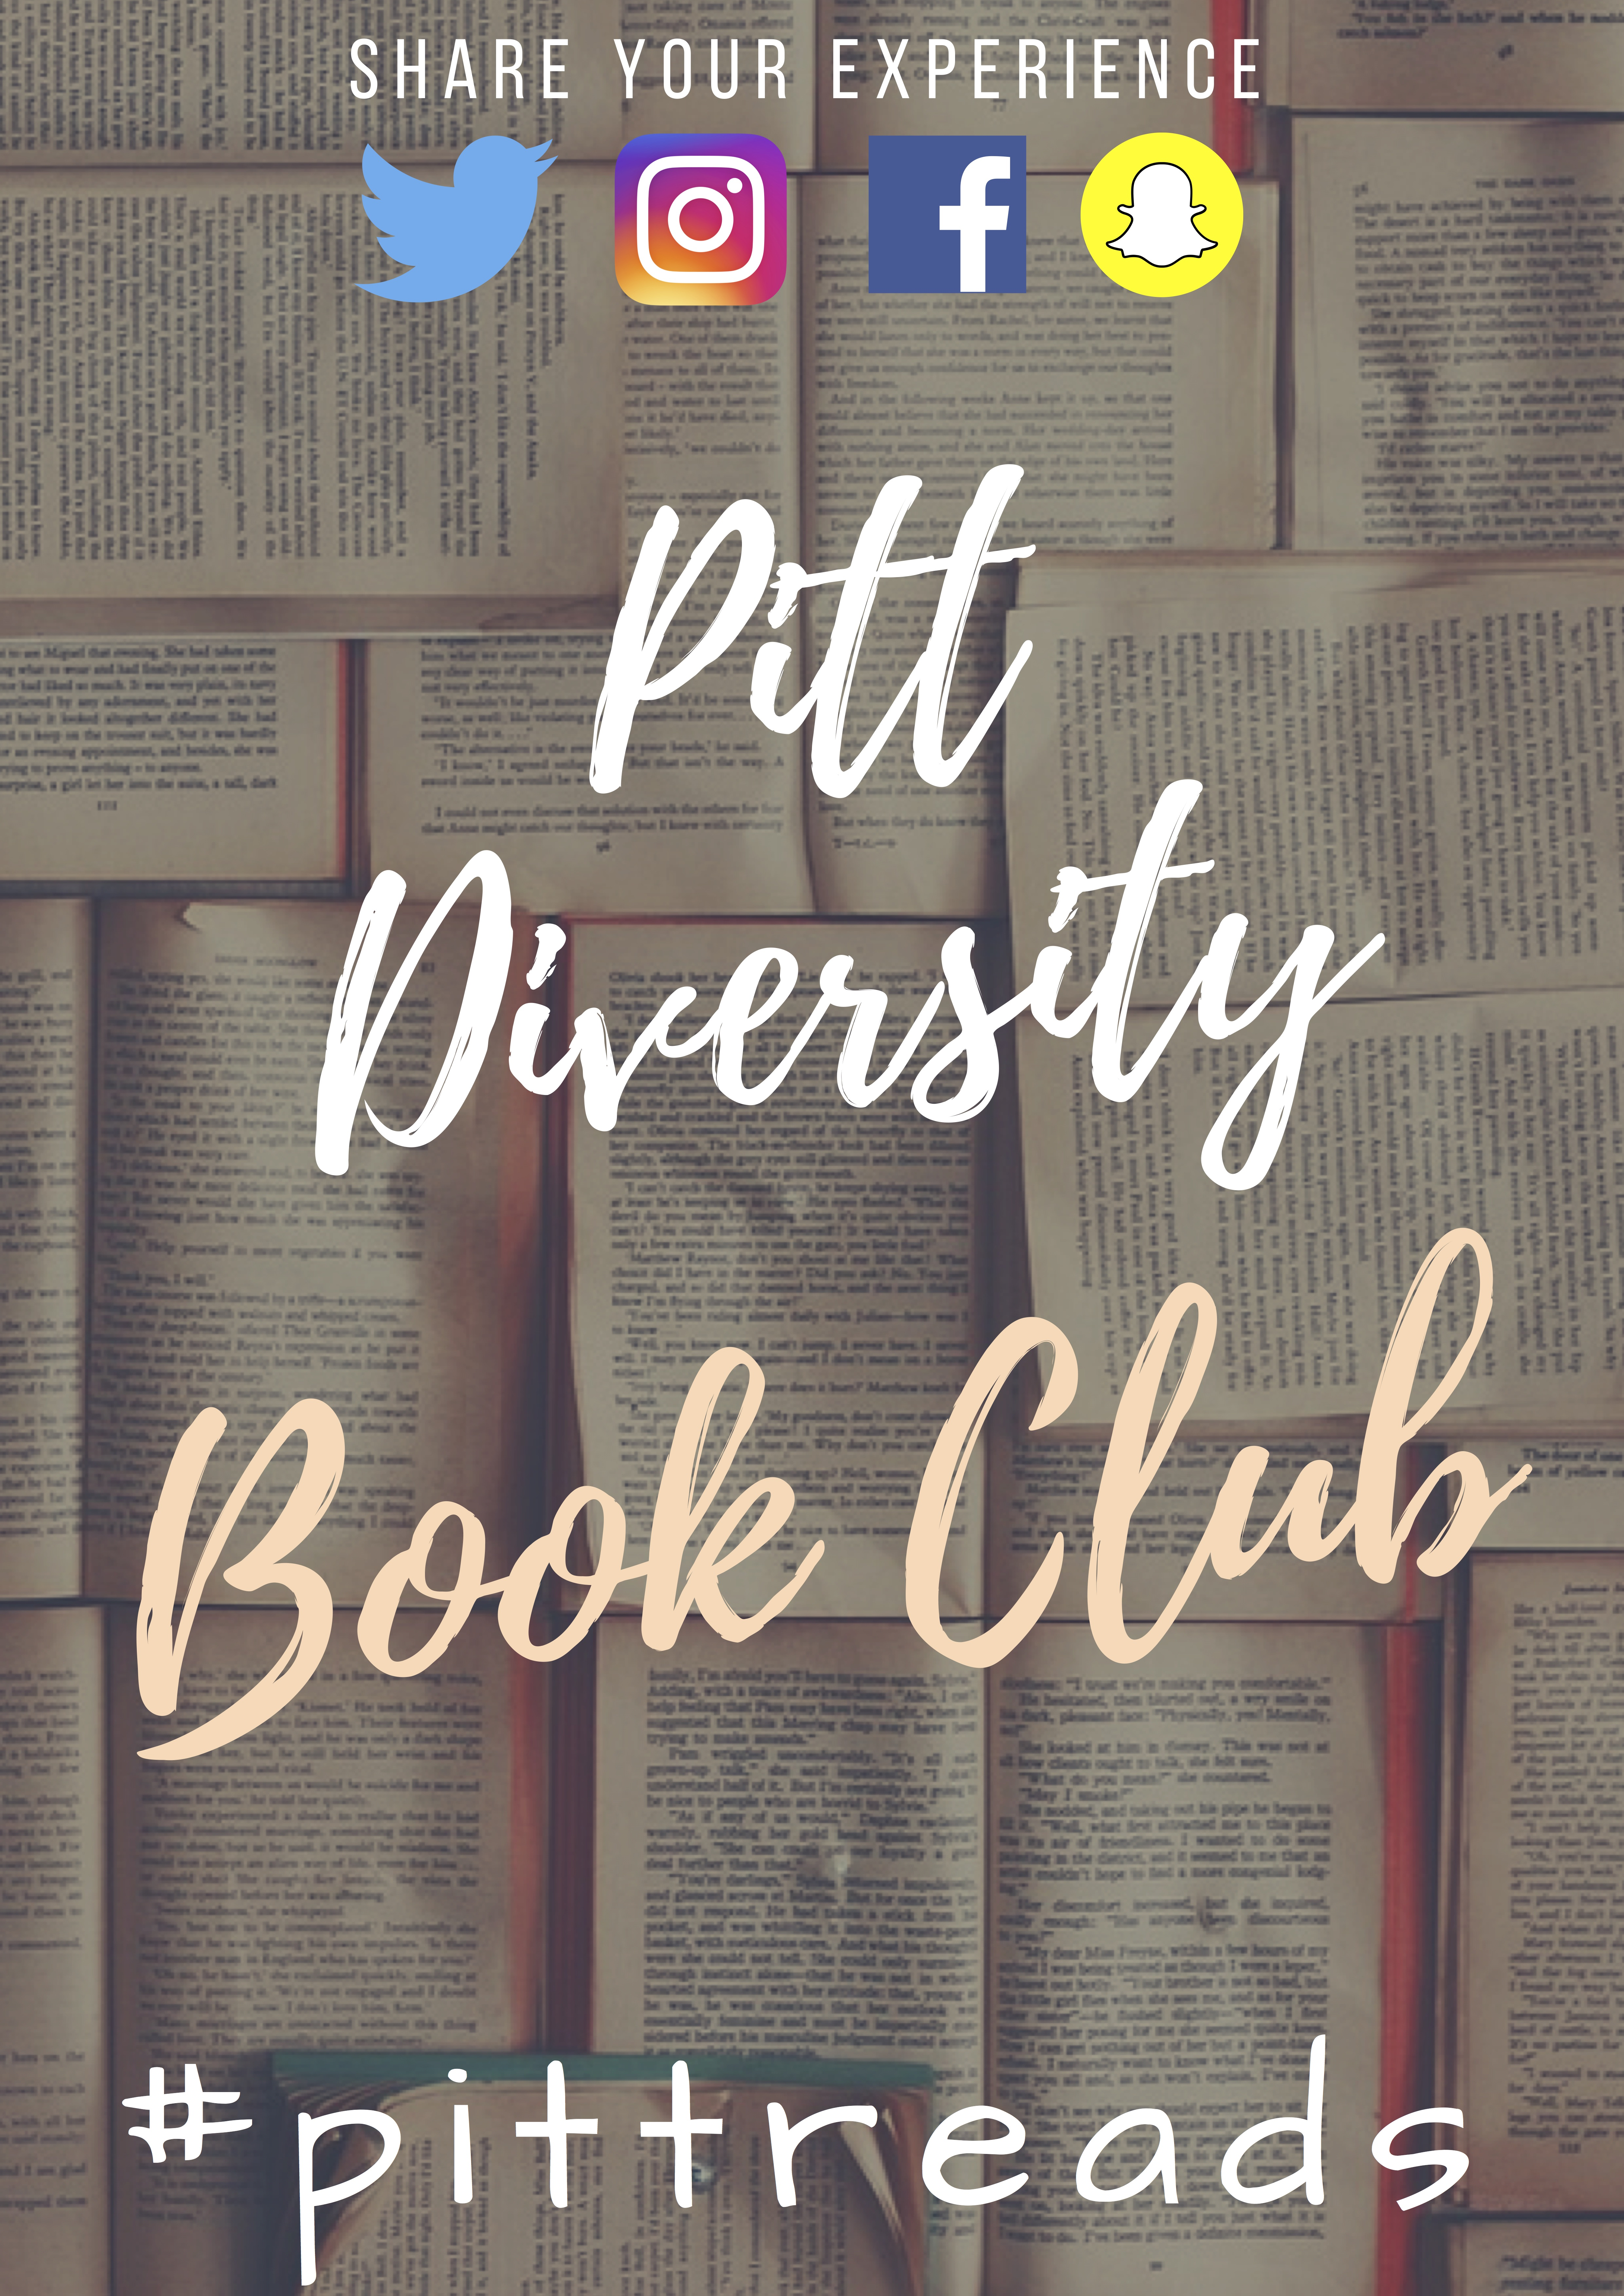 Pitt Diversity Book Club #pittreads